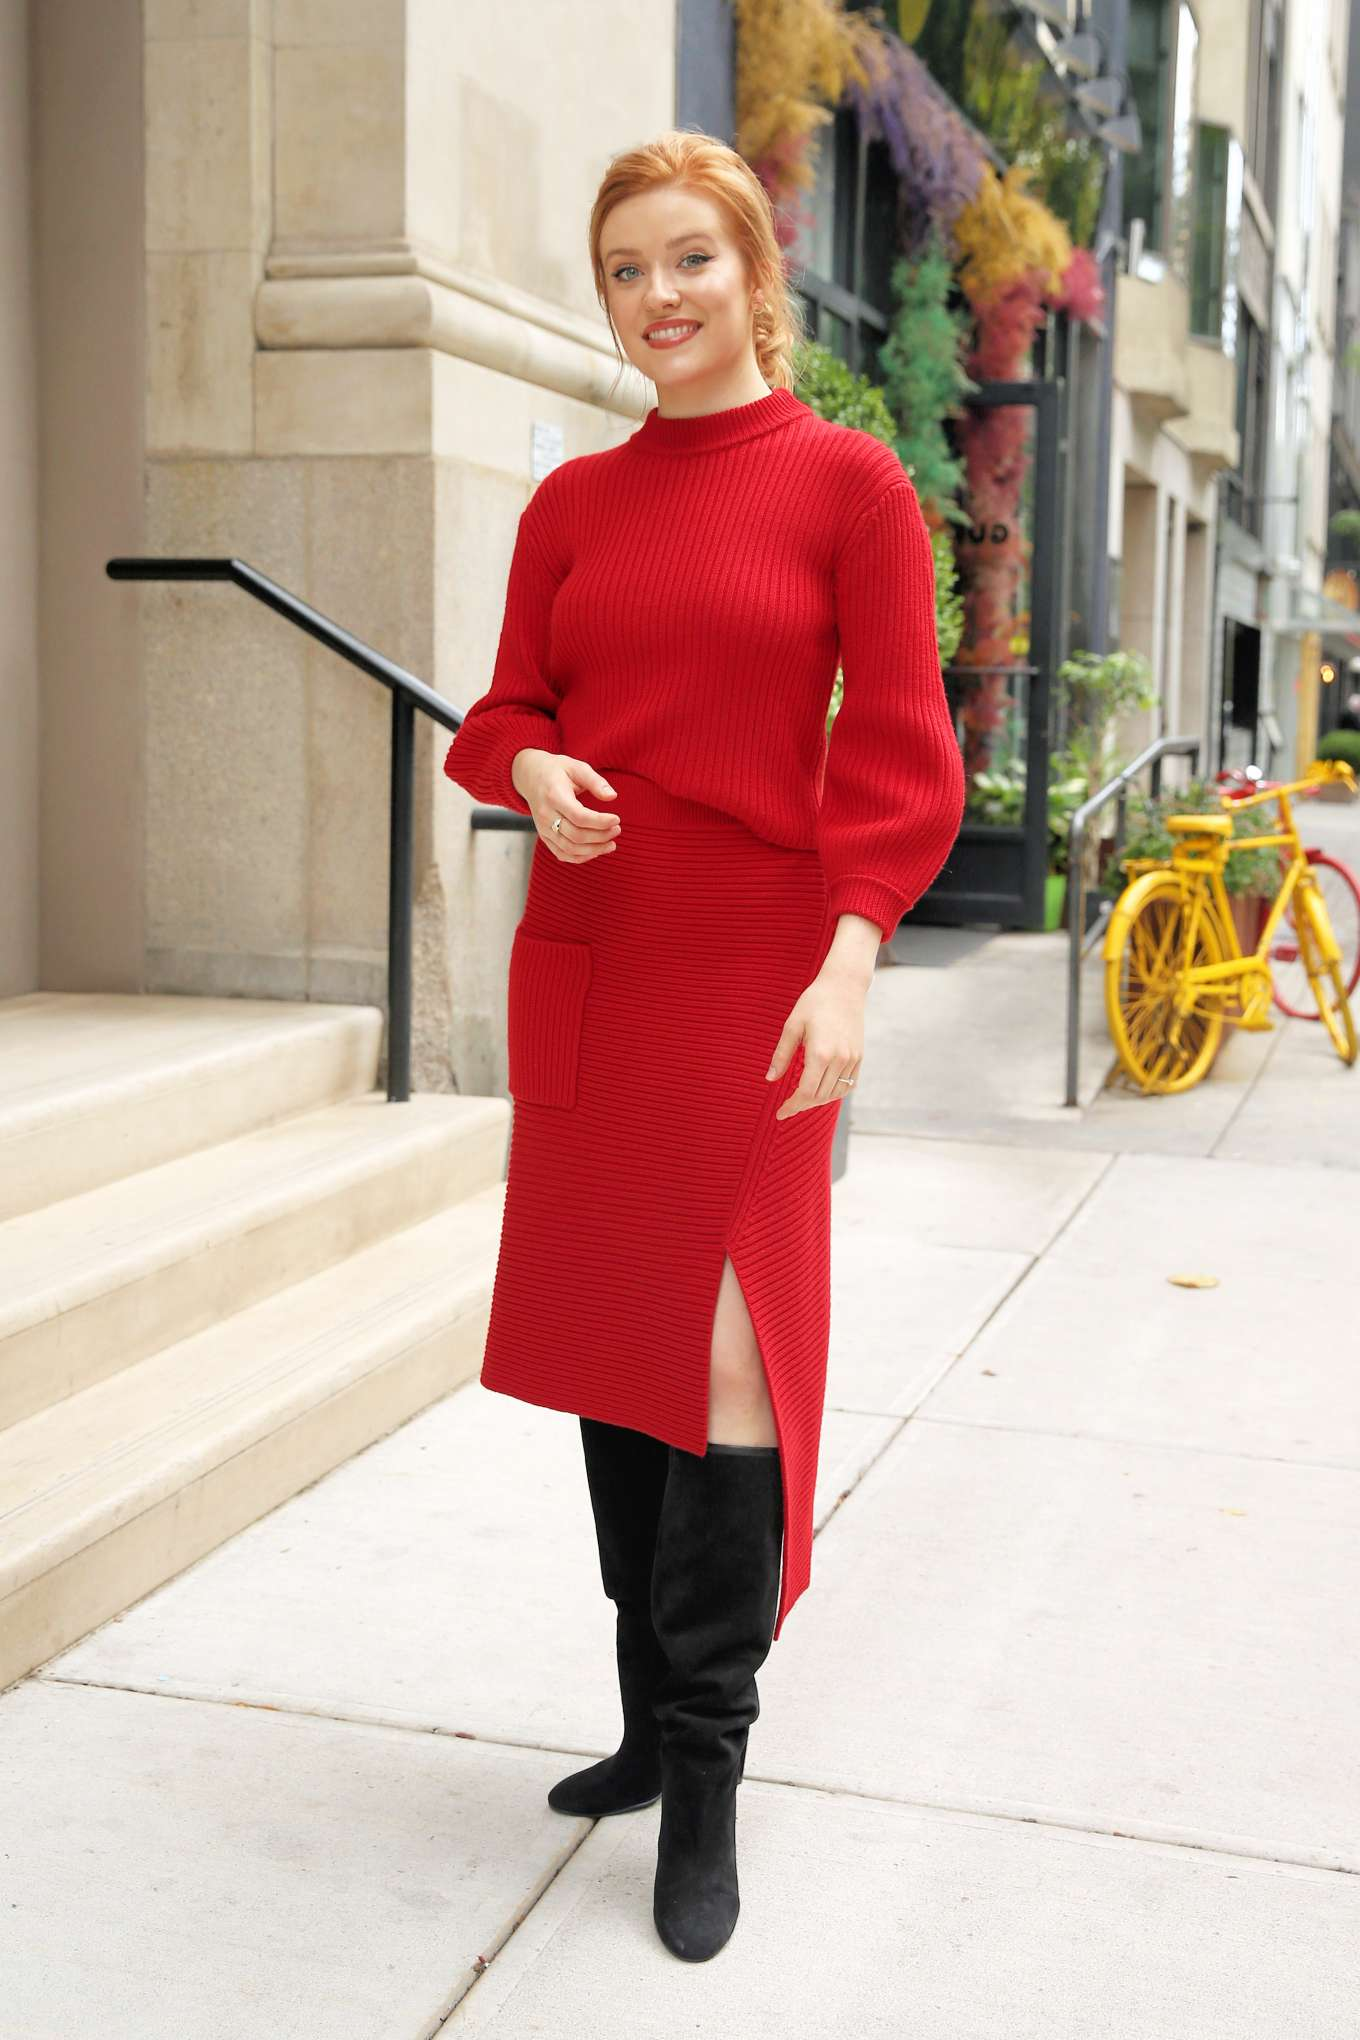 Kennedy McCann in Red Knit Dress - Leaves Buzzfeed in New York City